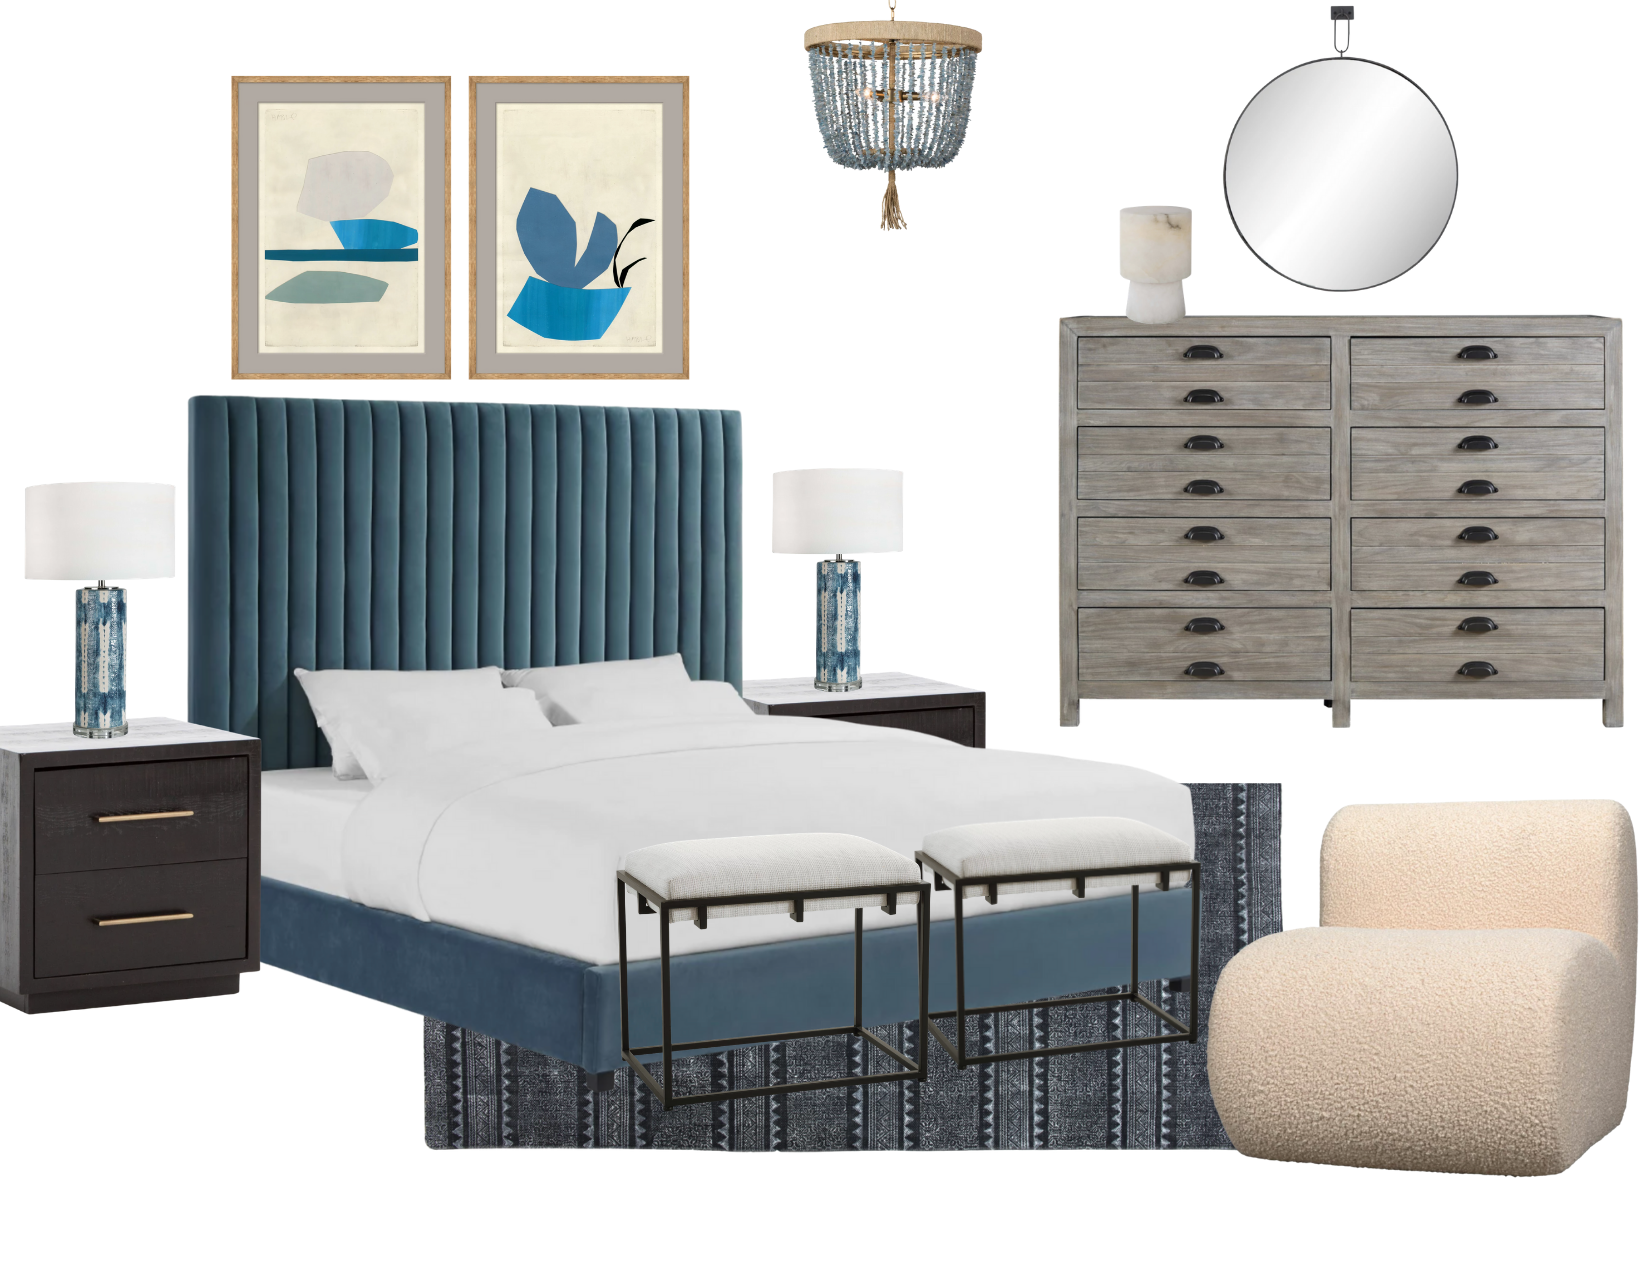 Trinity Bellwoods Bedroom for Instant Interiors